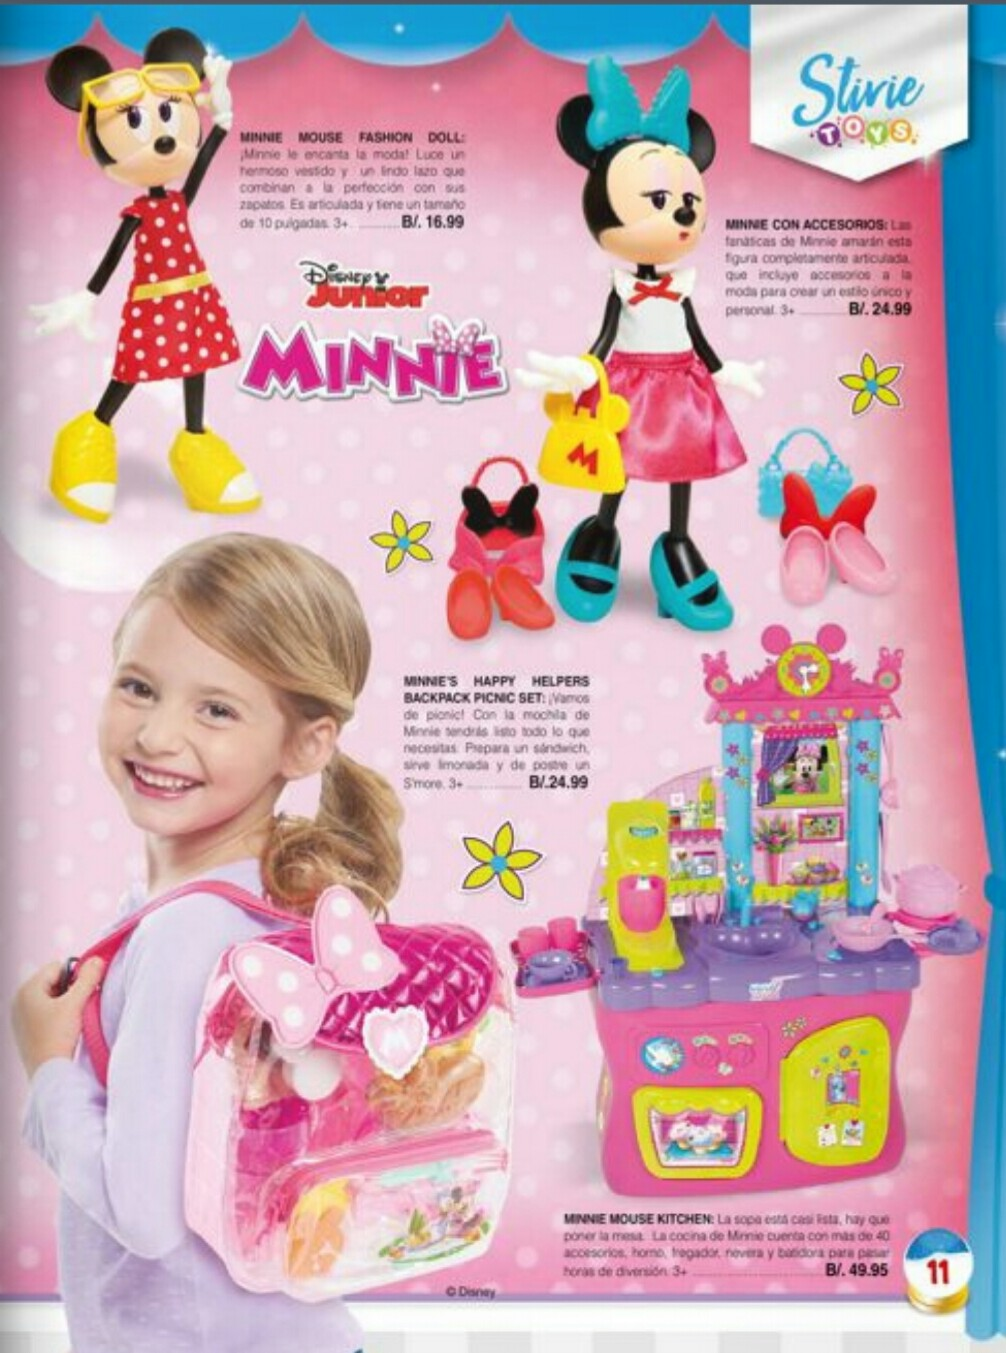 Catalogo juguetes Stivie toys 2018 p11